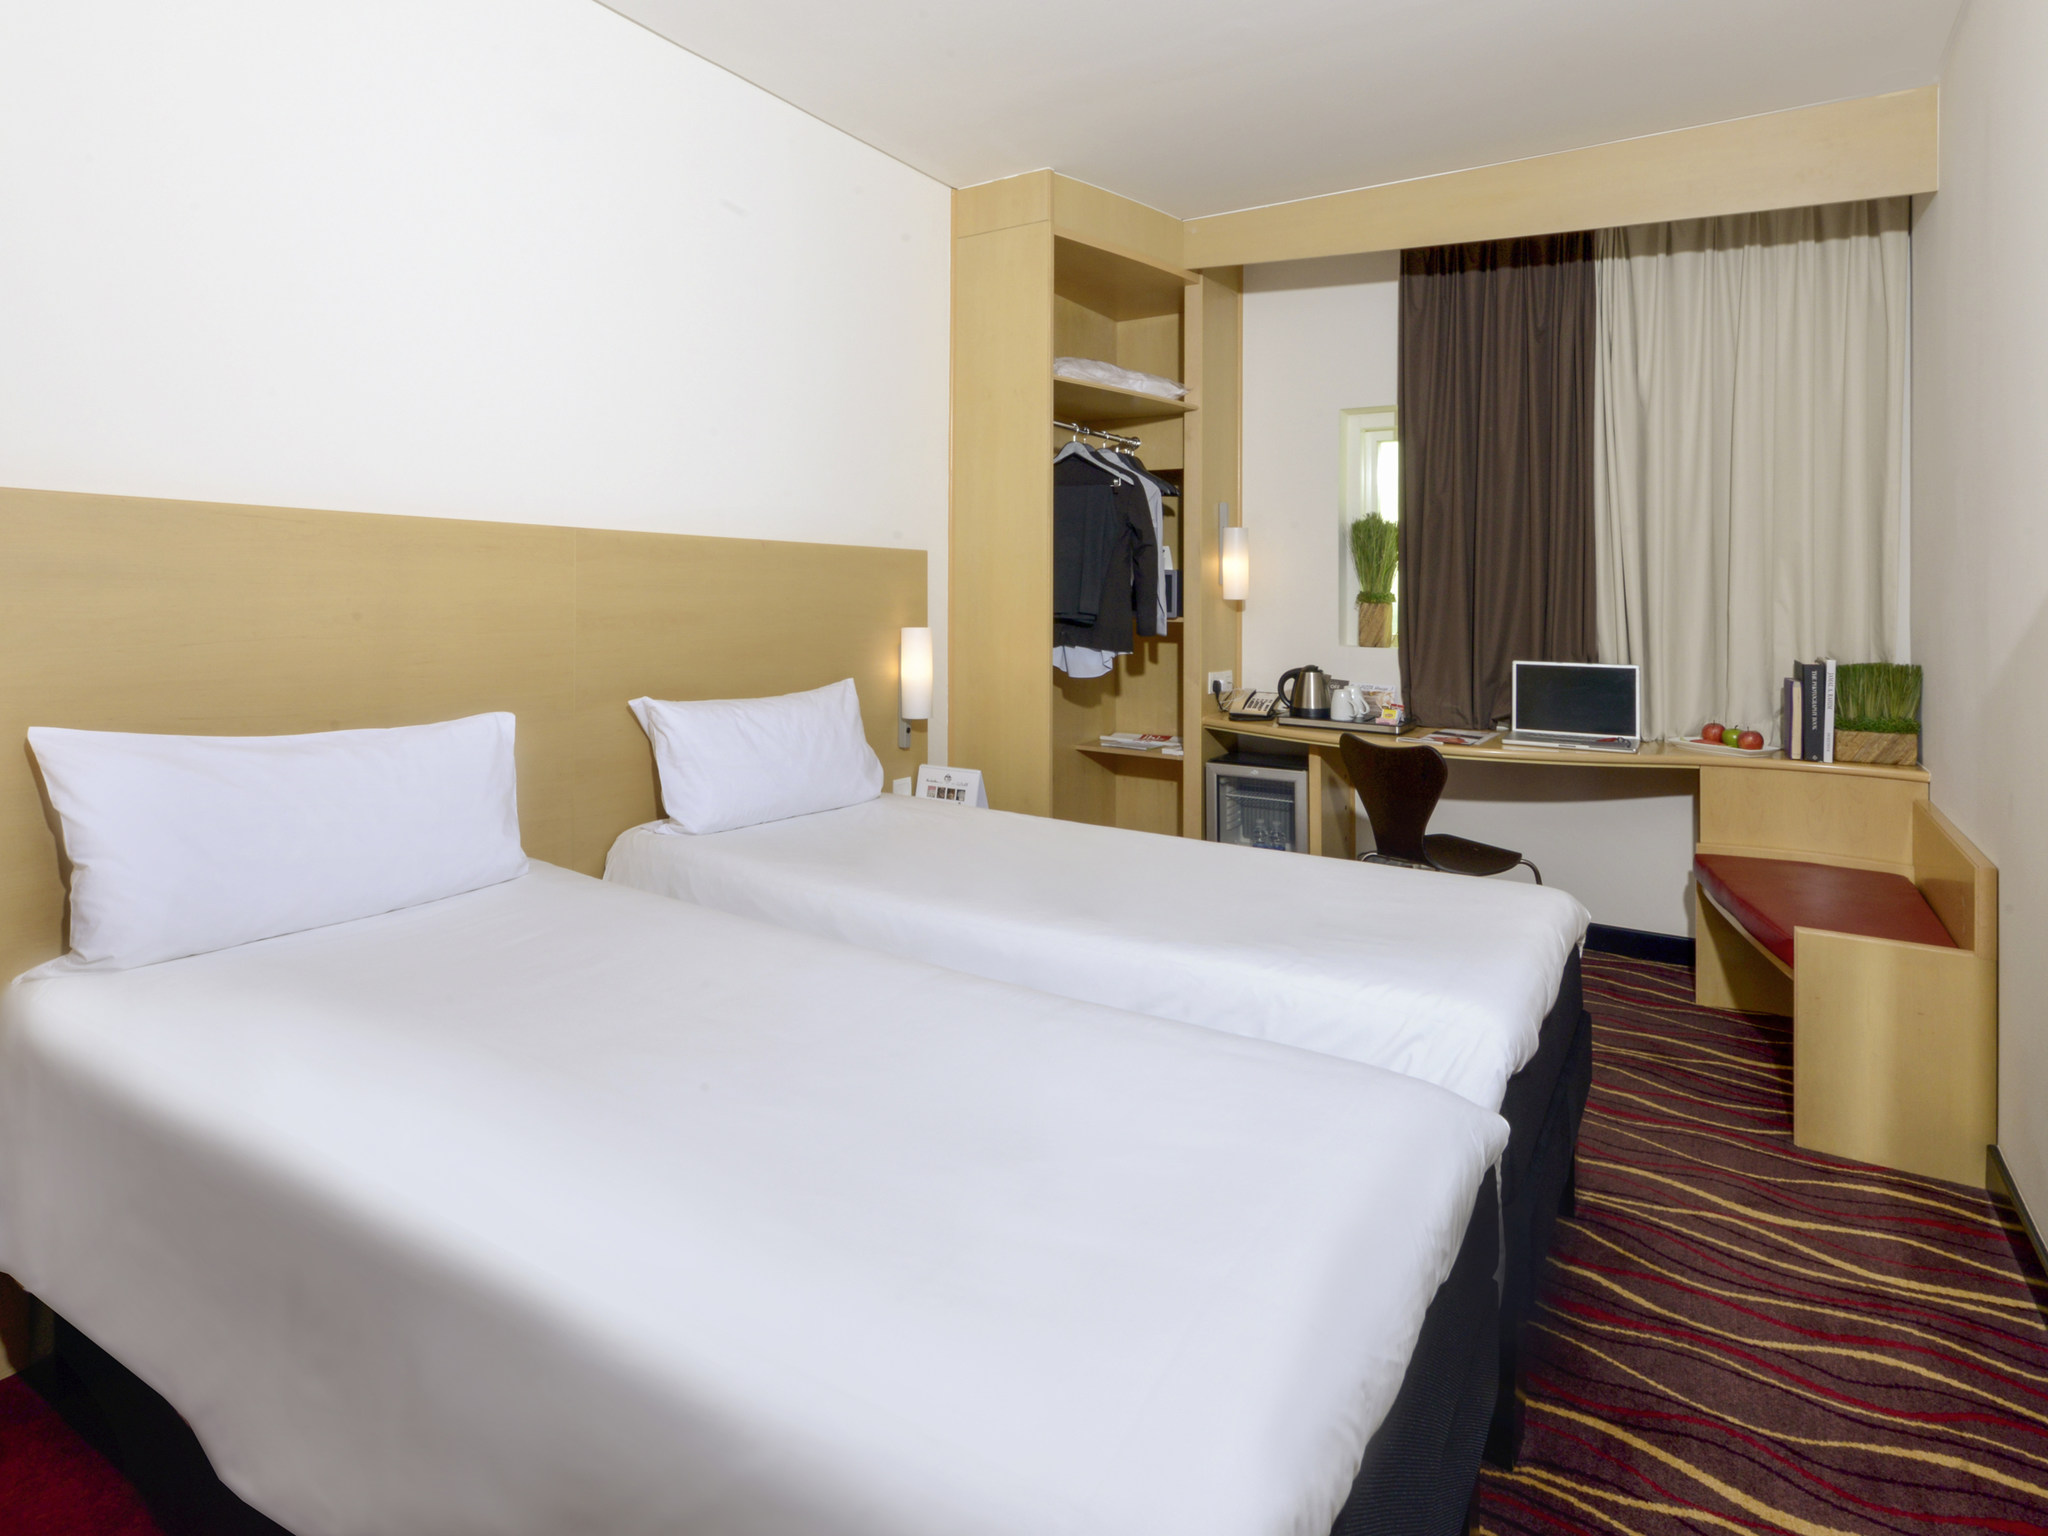 Hotel In Manama Ibis Seef With Gym Pool The Little Things She Needs Kashira 2b Brown Cokelat 38